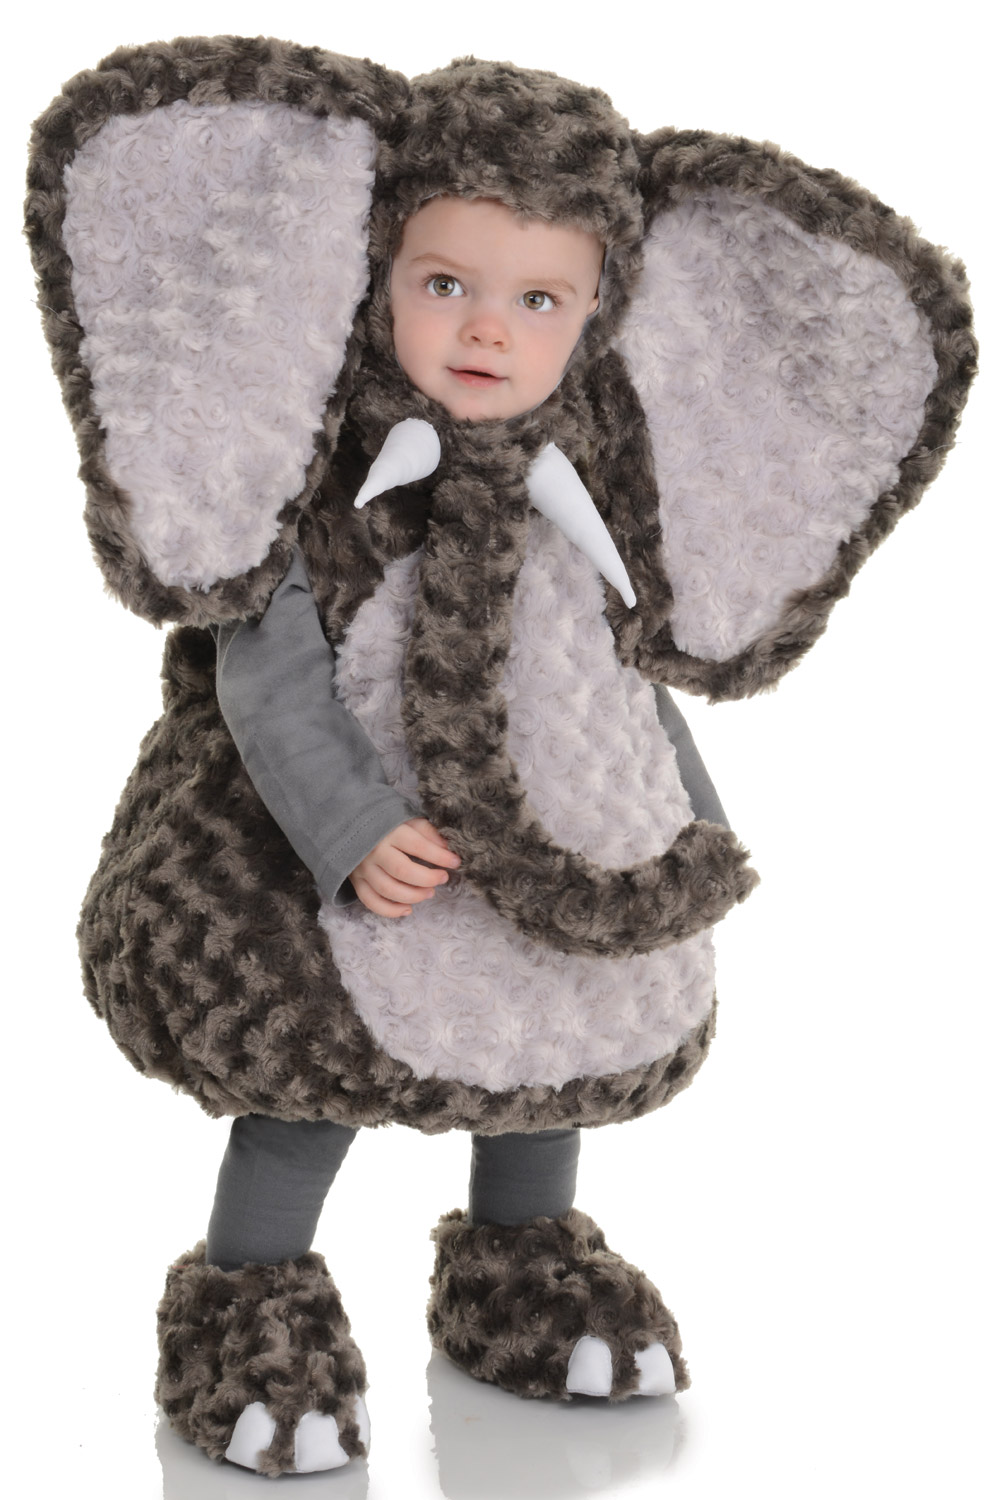 Elephant Baby Belly Toddler Costume  sc 1 st  Pure Costumes & Koala Toddler Costume - PureCostumes.com